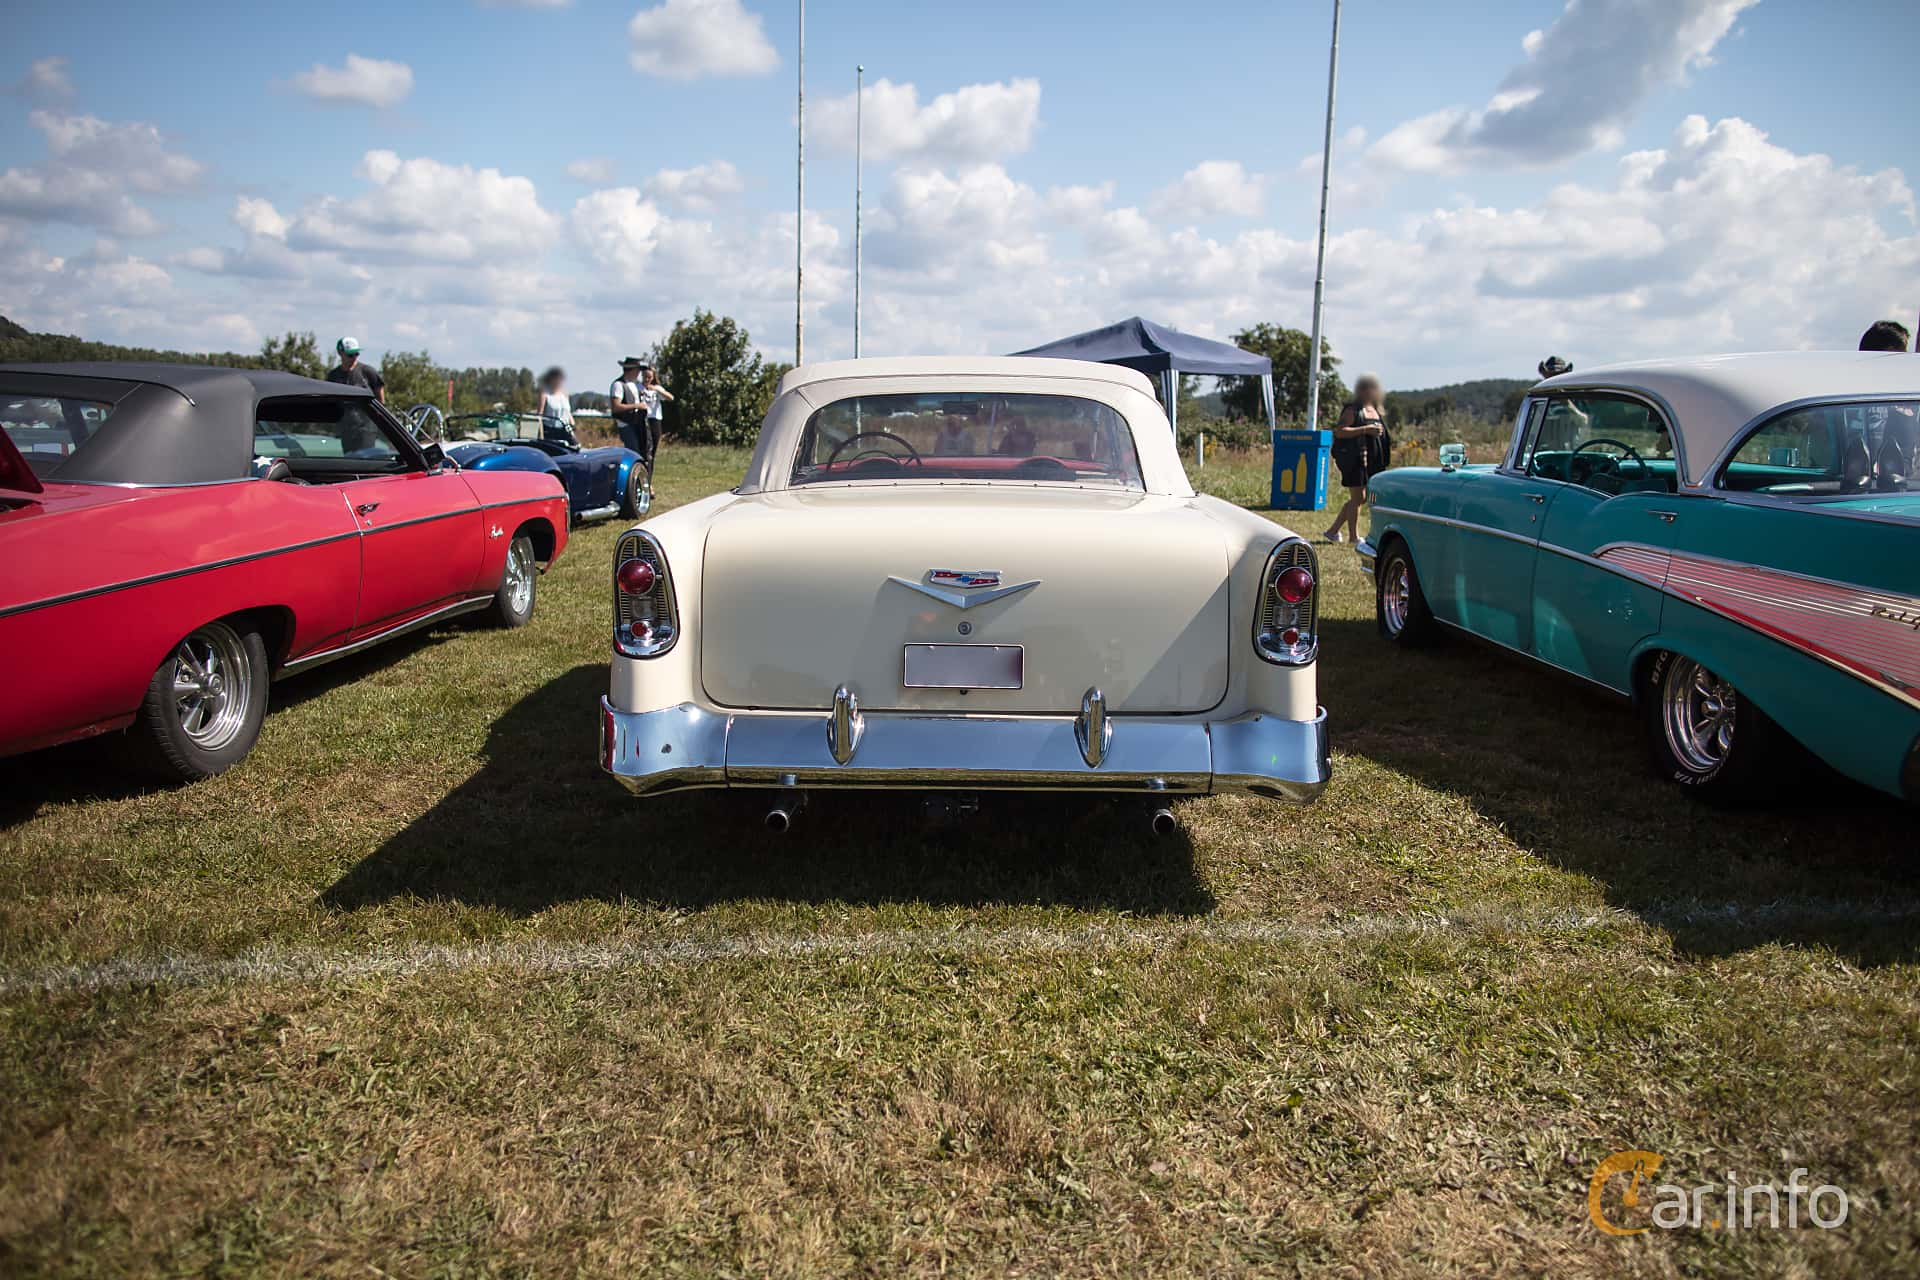 Chevrolet Bel Air Convertible 4.3 V8 Powerglide, 173hp, 1956 at Wheels & Wings 2017